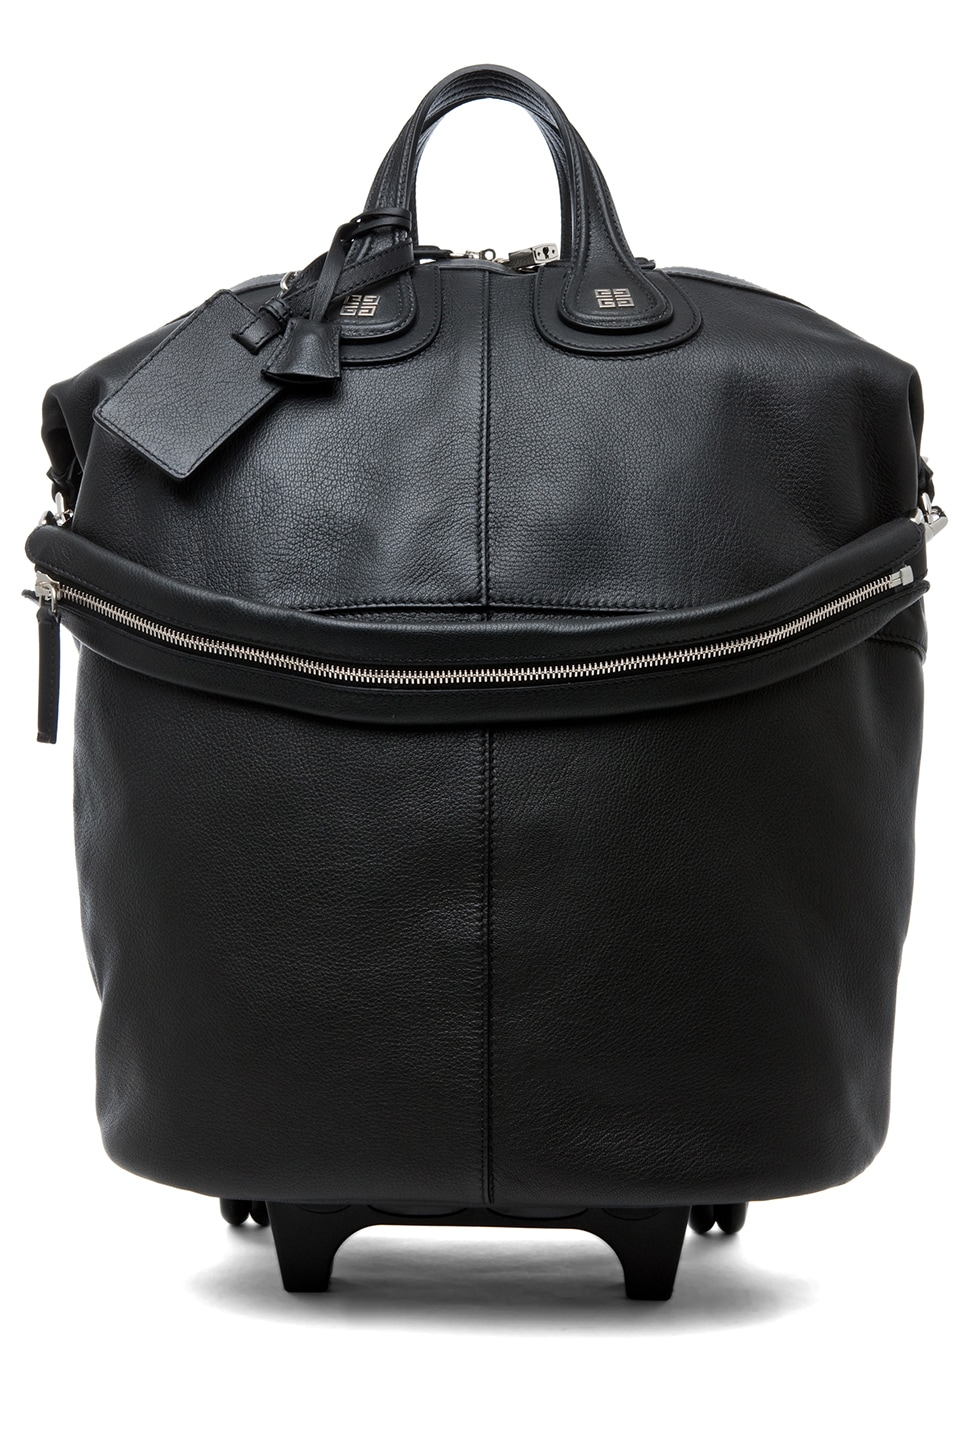 Image 1 of GIVENCHY Nightingale Carry-On Luggage in Black